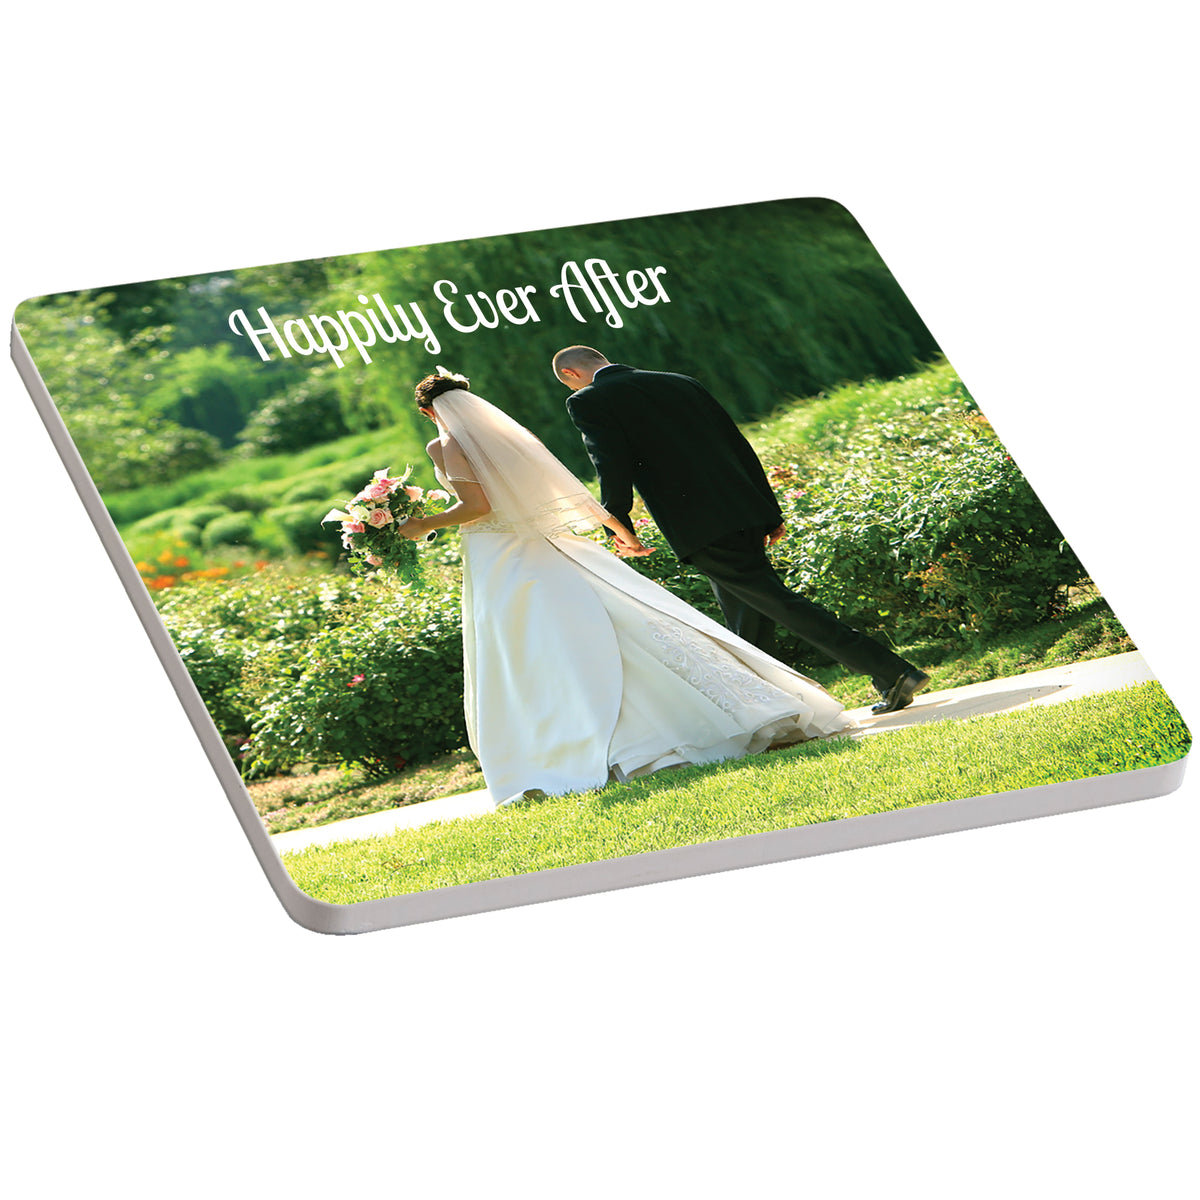 Statement Year Personalized Ceramic Coaster